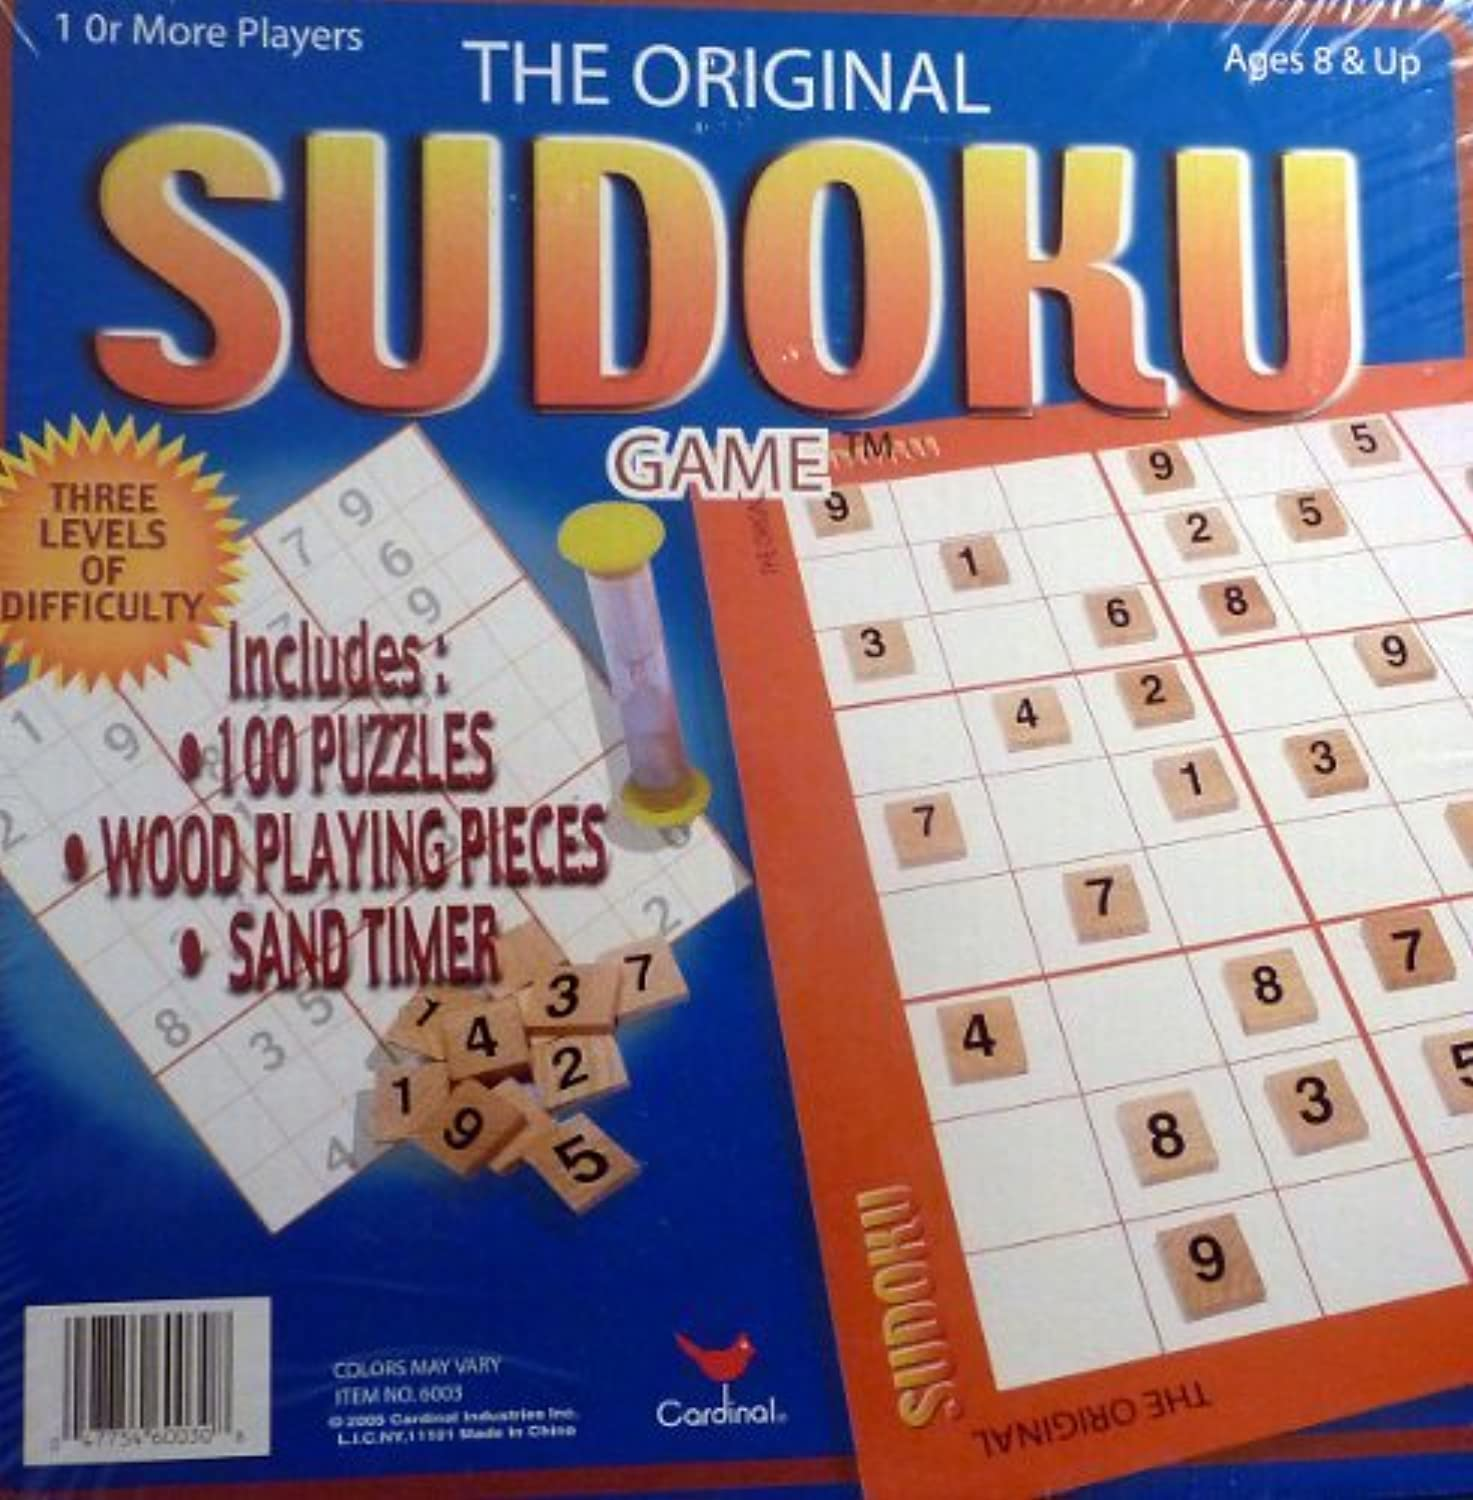 The Original Sudoku Game with 100 Puzzles & Wood Playing Pieces (2005) by Cardinal